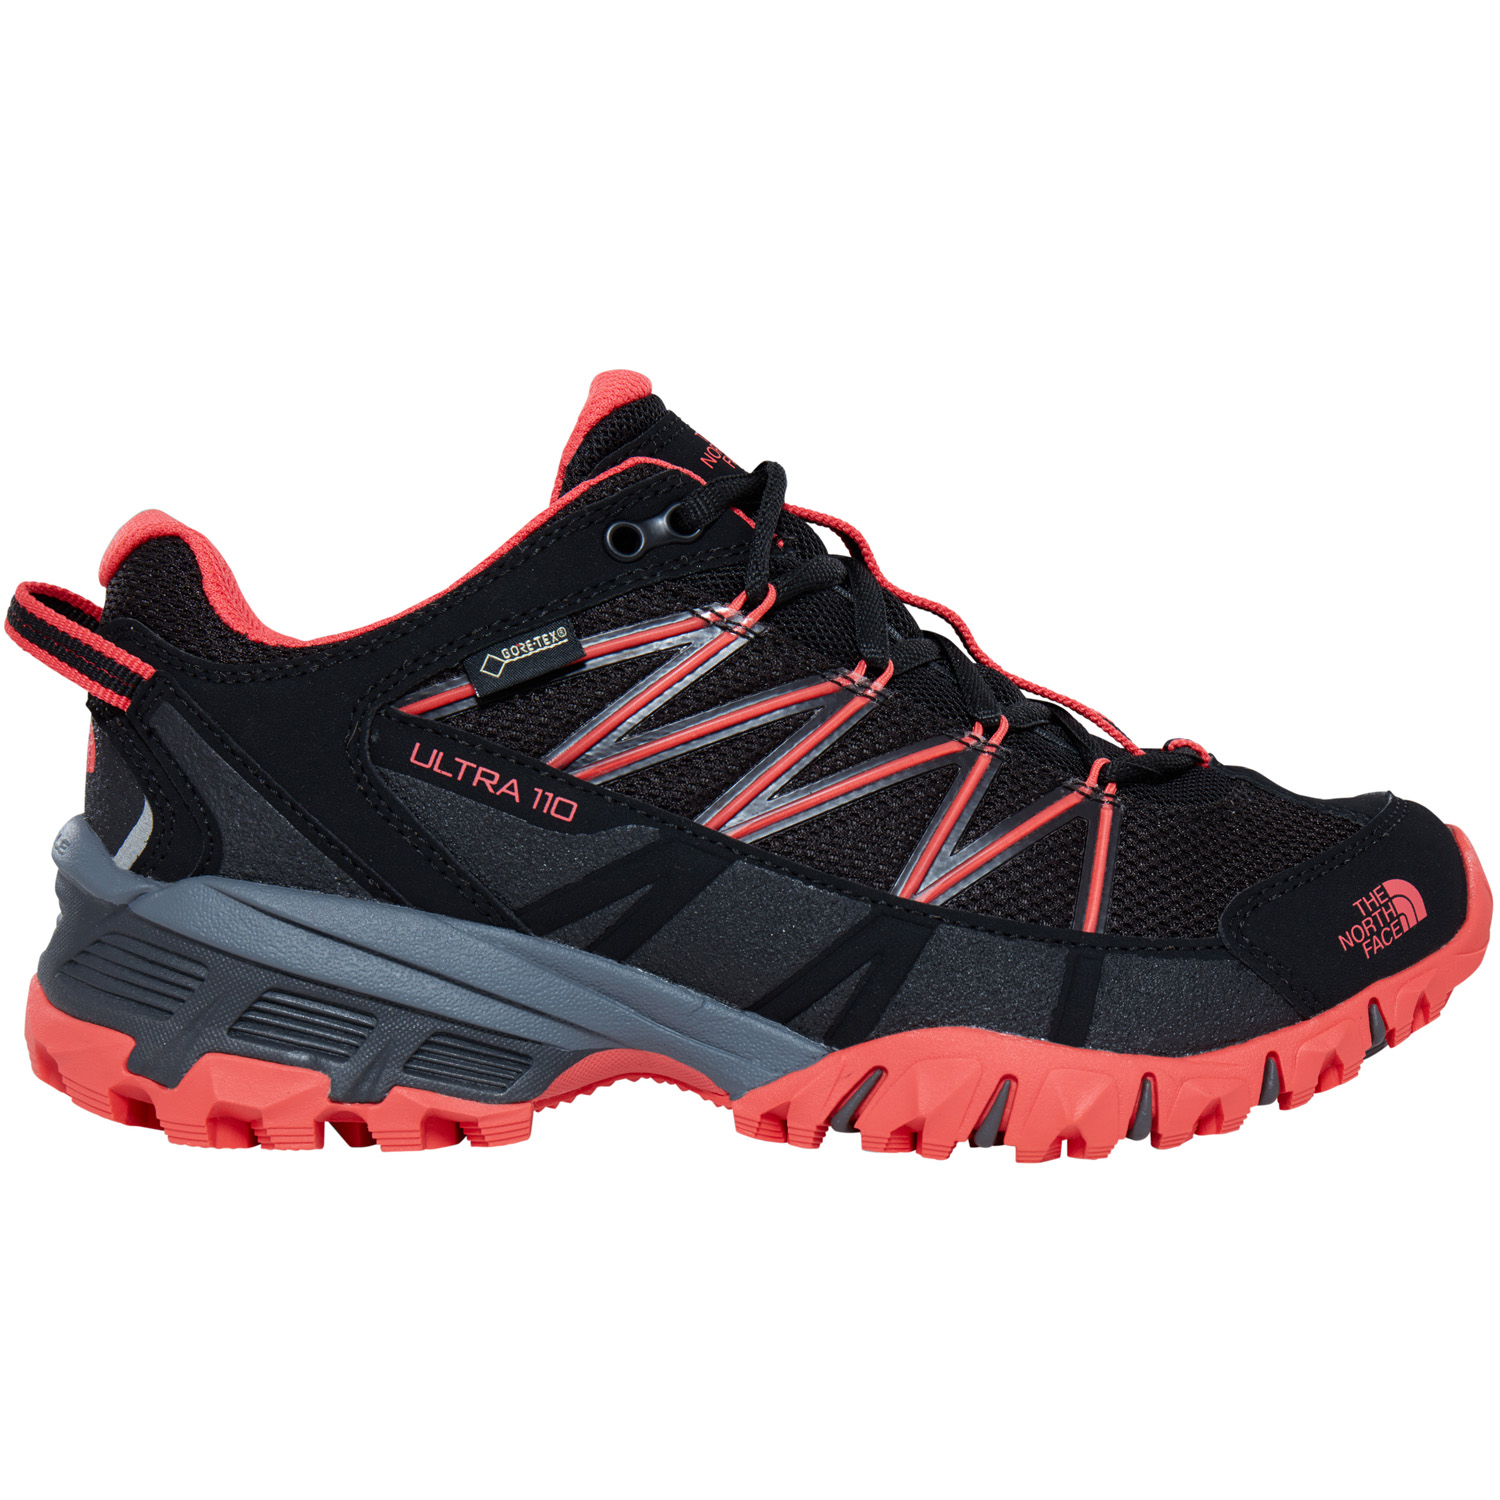 5bfc57740 THE NORTH FACE W ULTRA 110 GTX